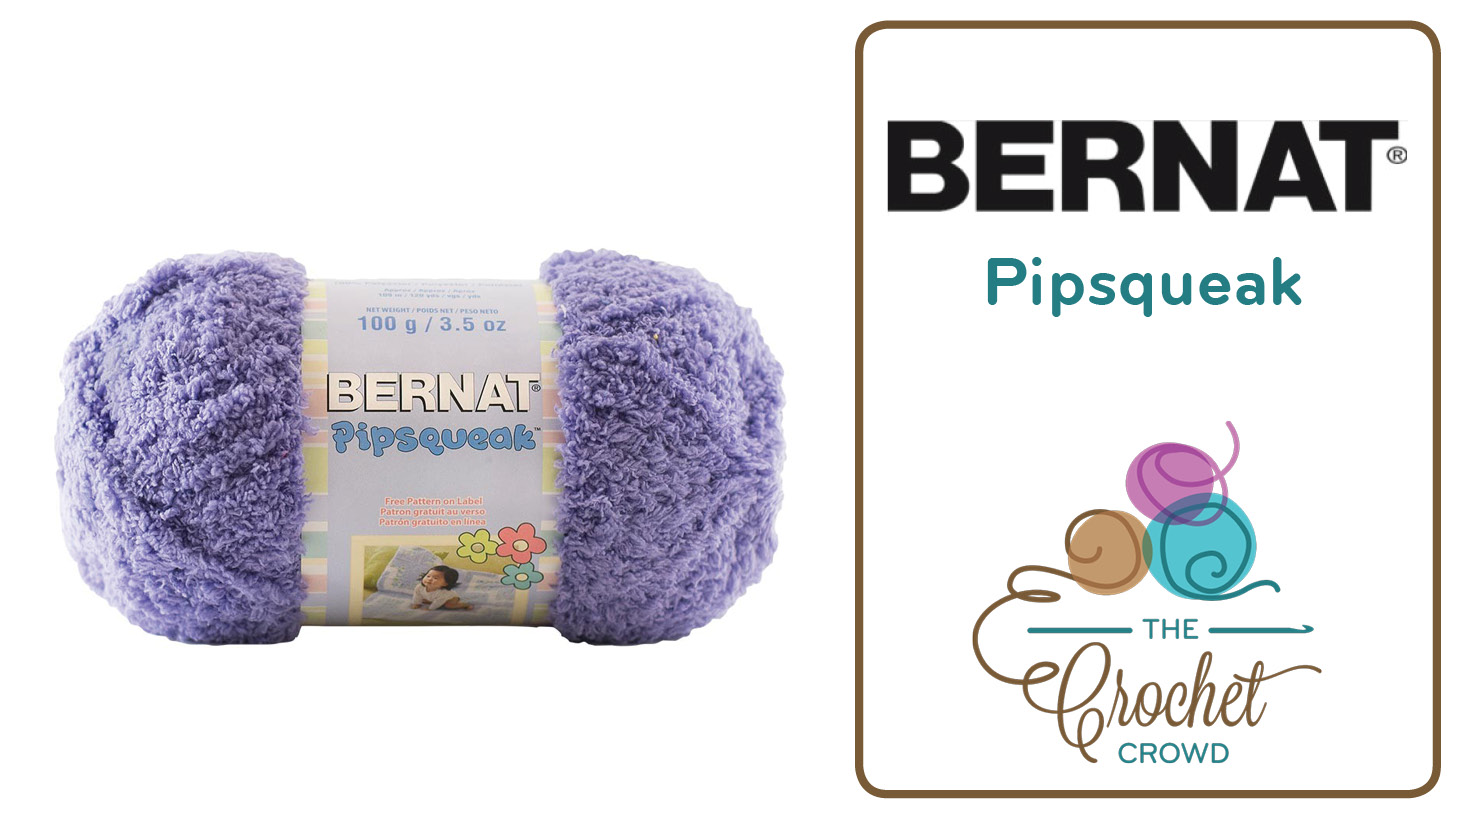 What To Do With Bernat Pipsqueak Yarn - The Crochet Crowd®